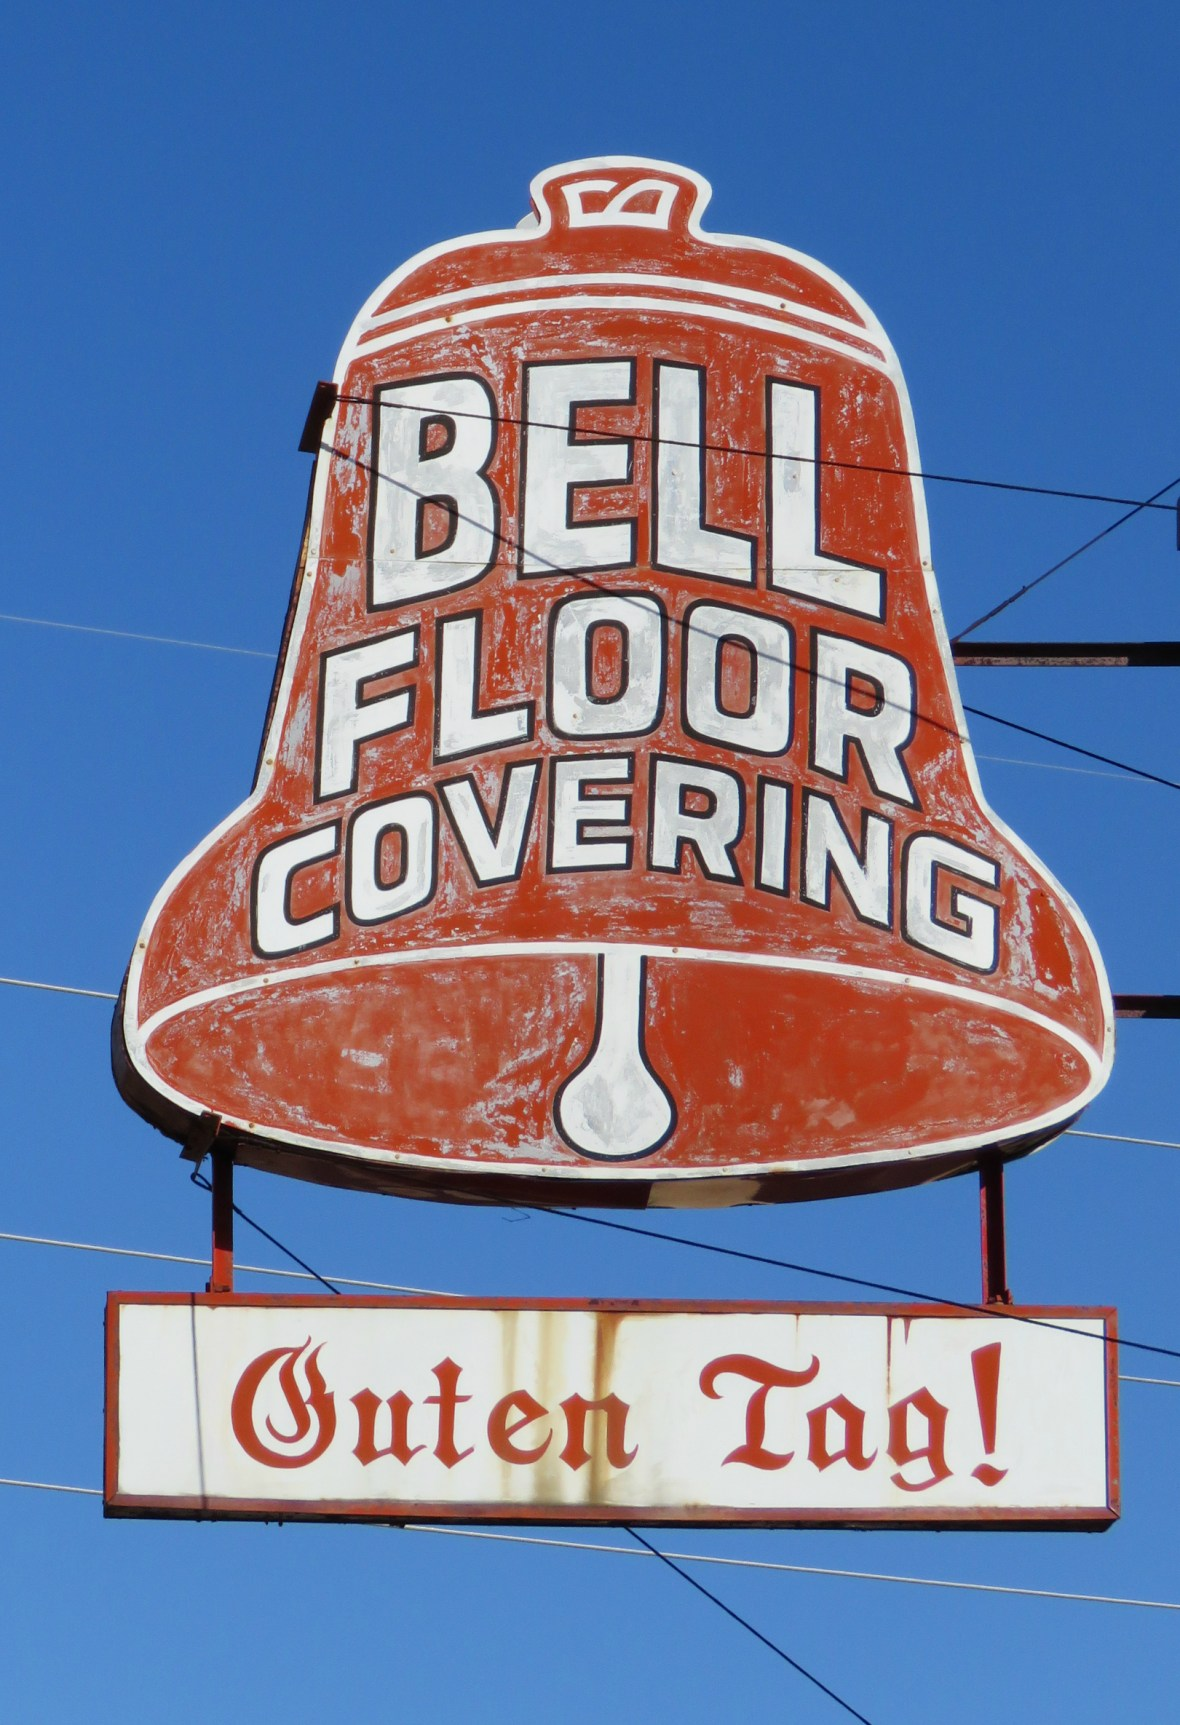 Bell Floor Covering - 4411 Victory Drive, Kansas City, Kansas U.S.A. - April 8, 2016